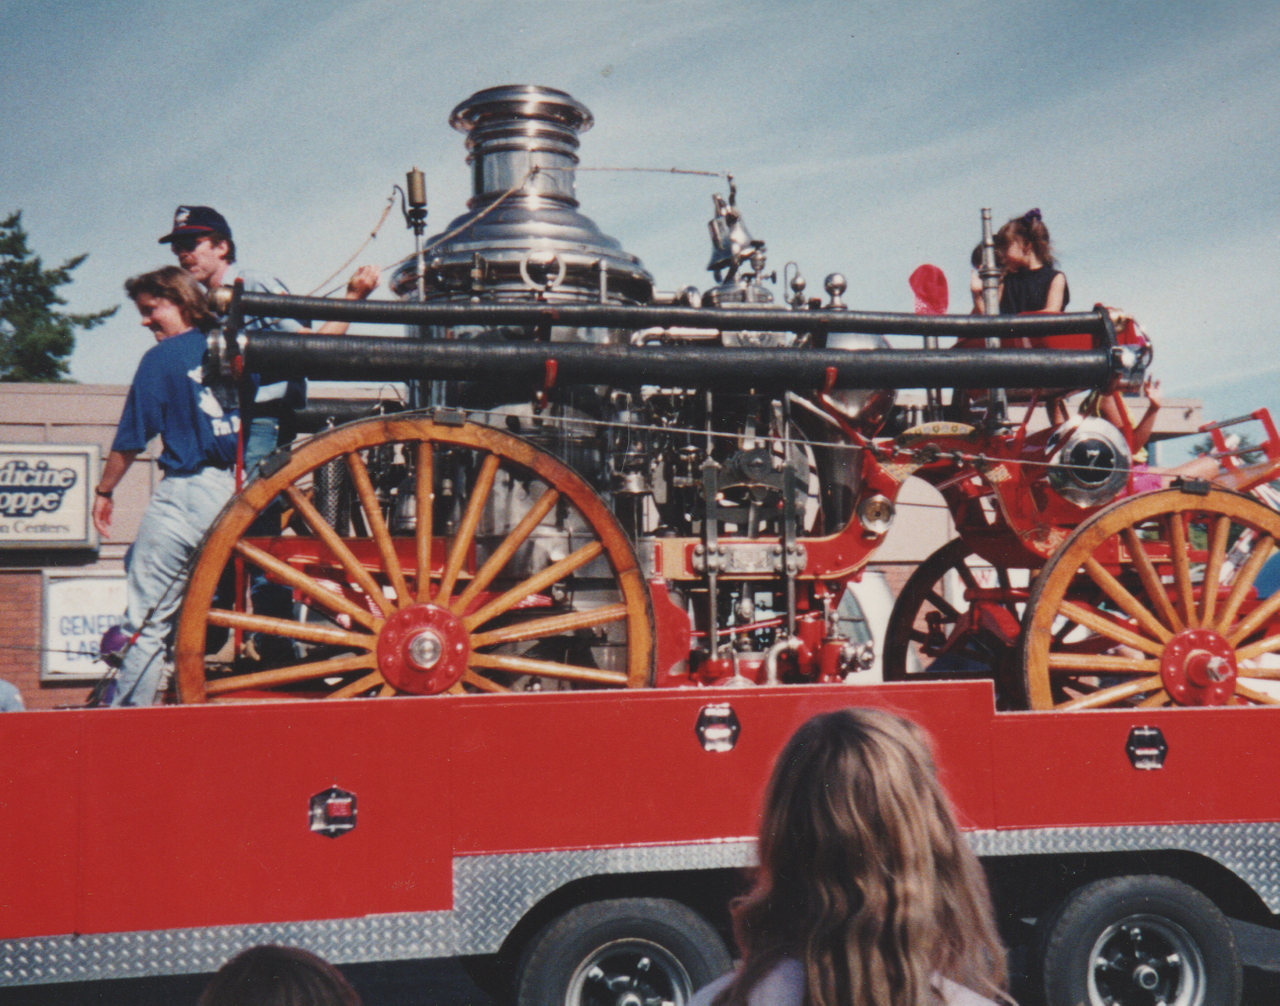 1992-09 - Fair in Forest Grove, parade, rides, Katie, Rick, Joey, Crystal, by Marilyn-05.png